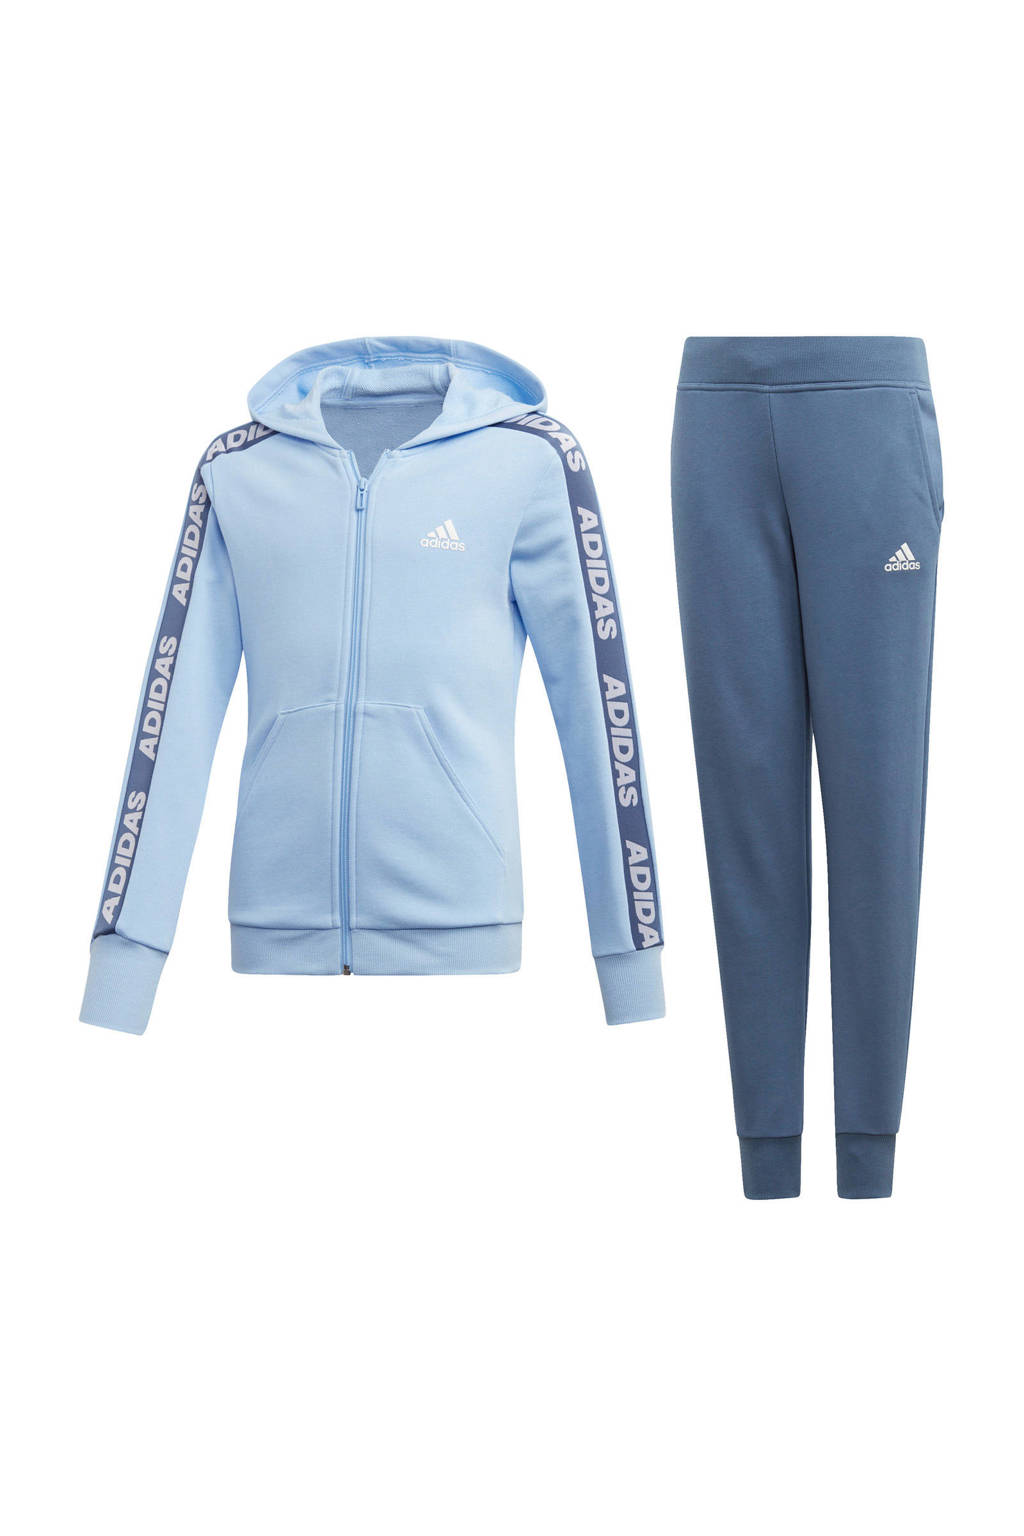 adidas performance trainingspak blauw, Blauw